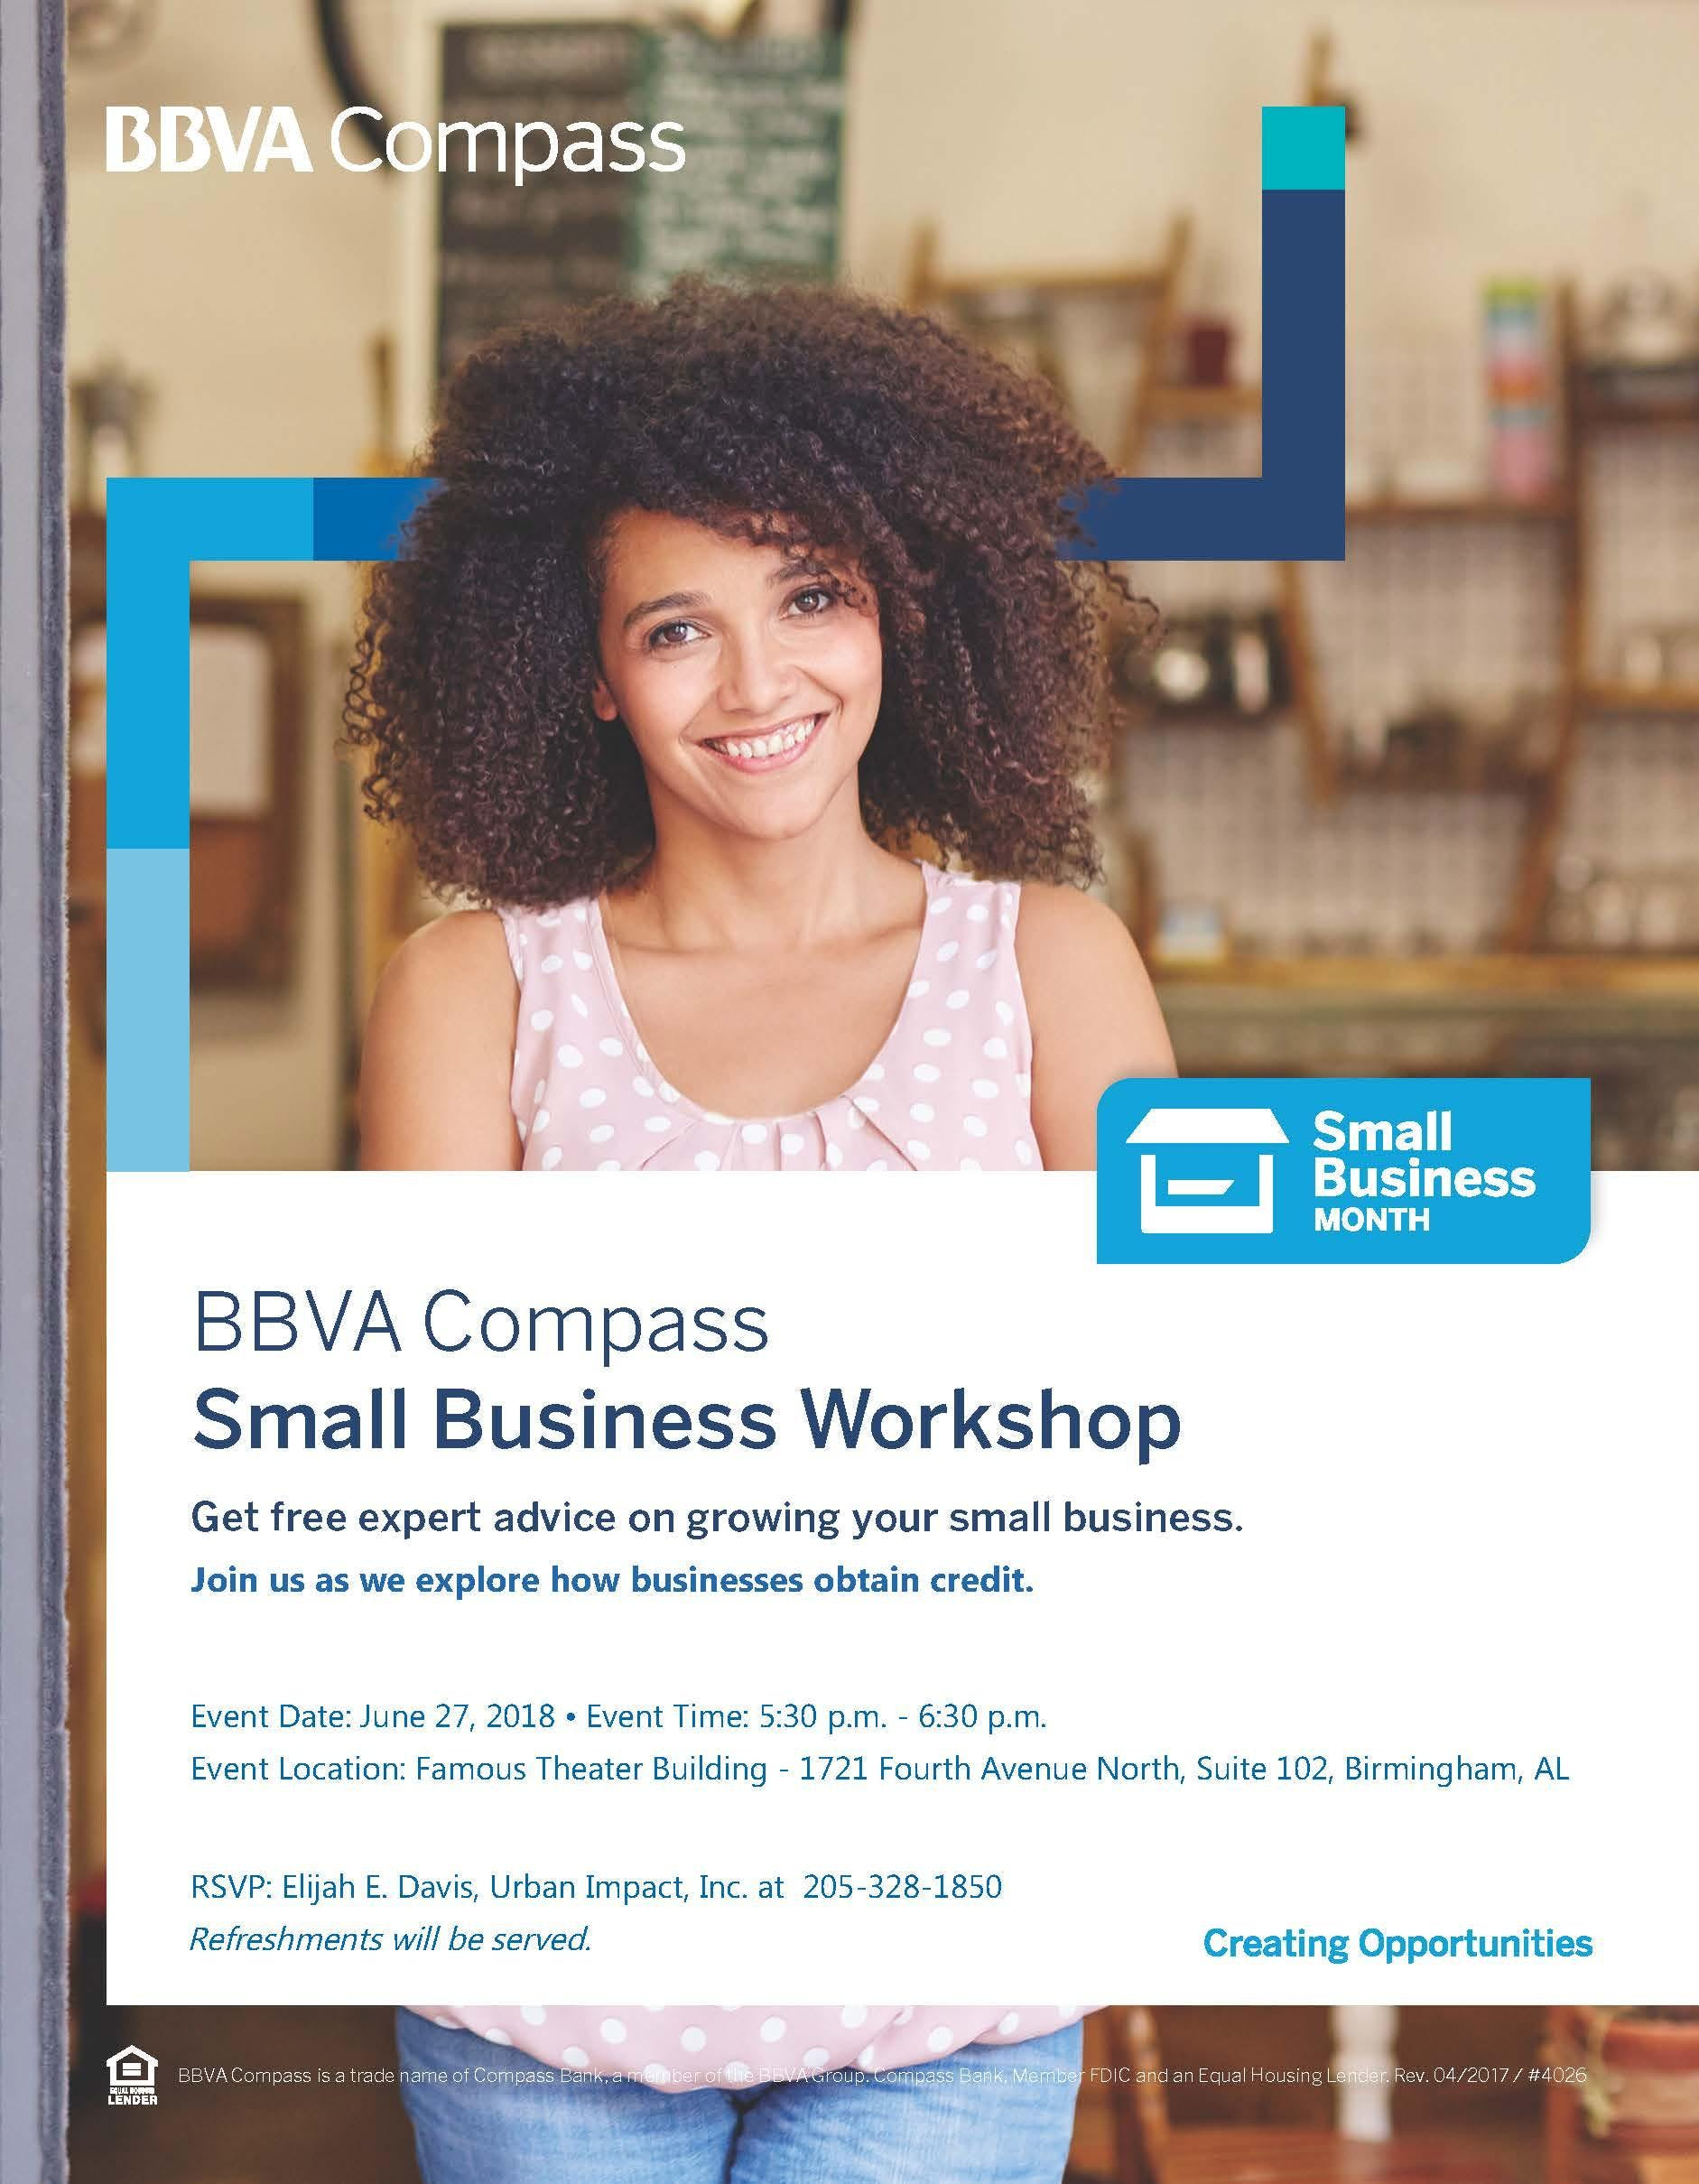 BBVA Compass Small Business Workshops in the